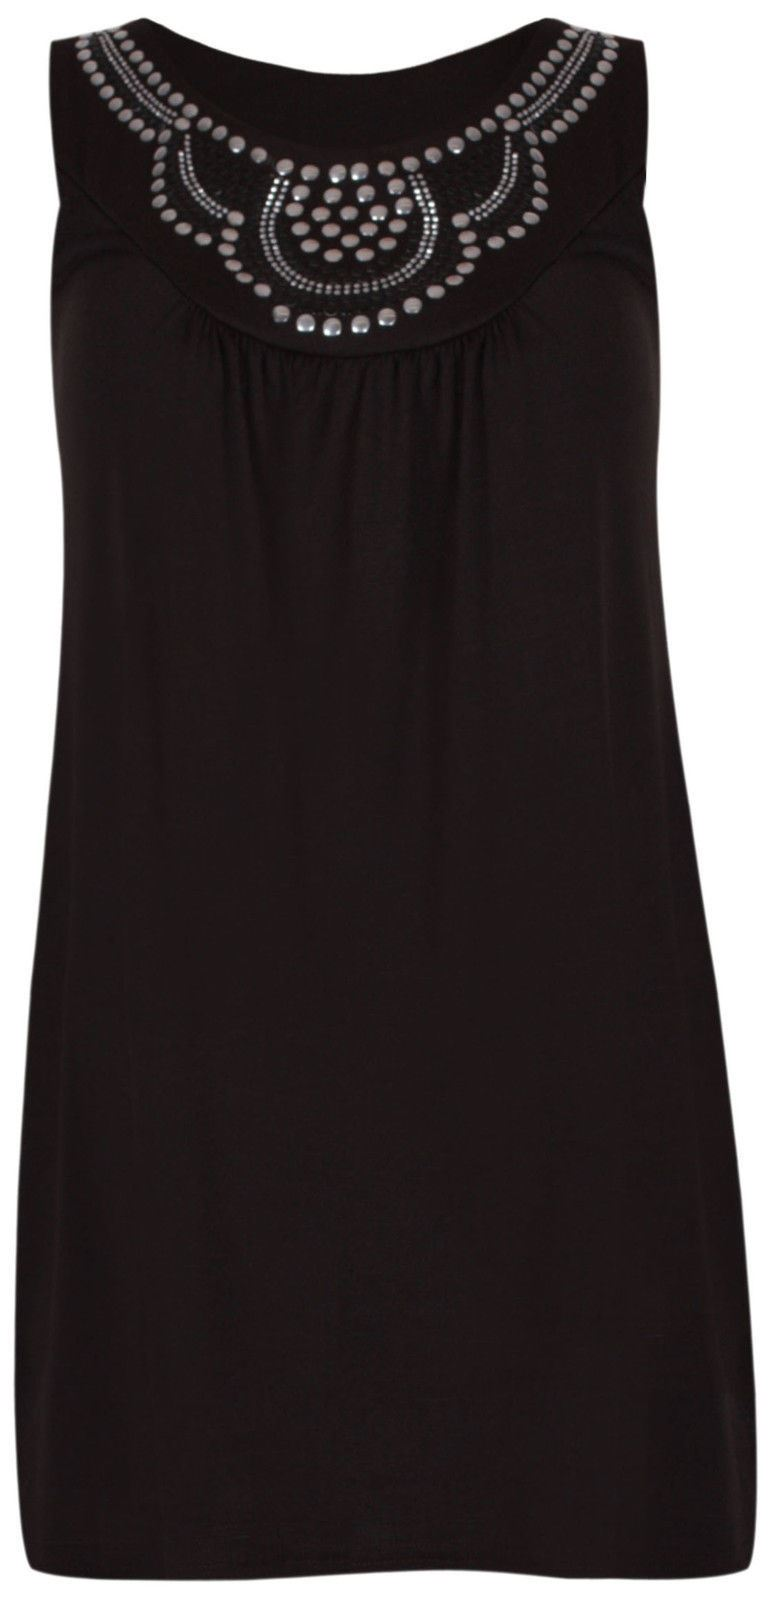 NEW-LADIES-PLUS-SIZE-BLACK-STUDDED-VEST-STRETCHY-LONG-WOMENS-TUNIC-TOPS-14-28